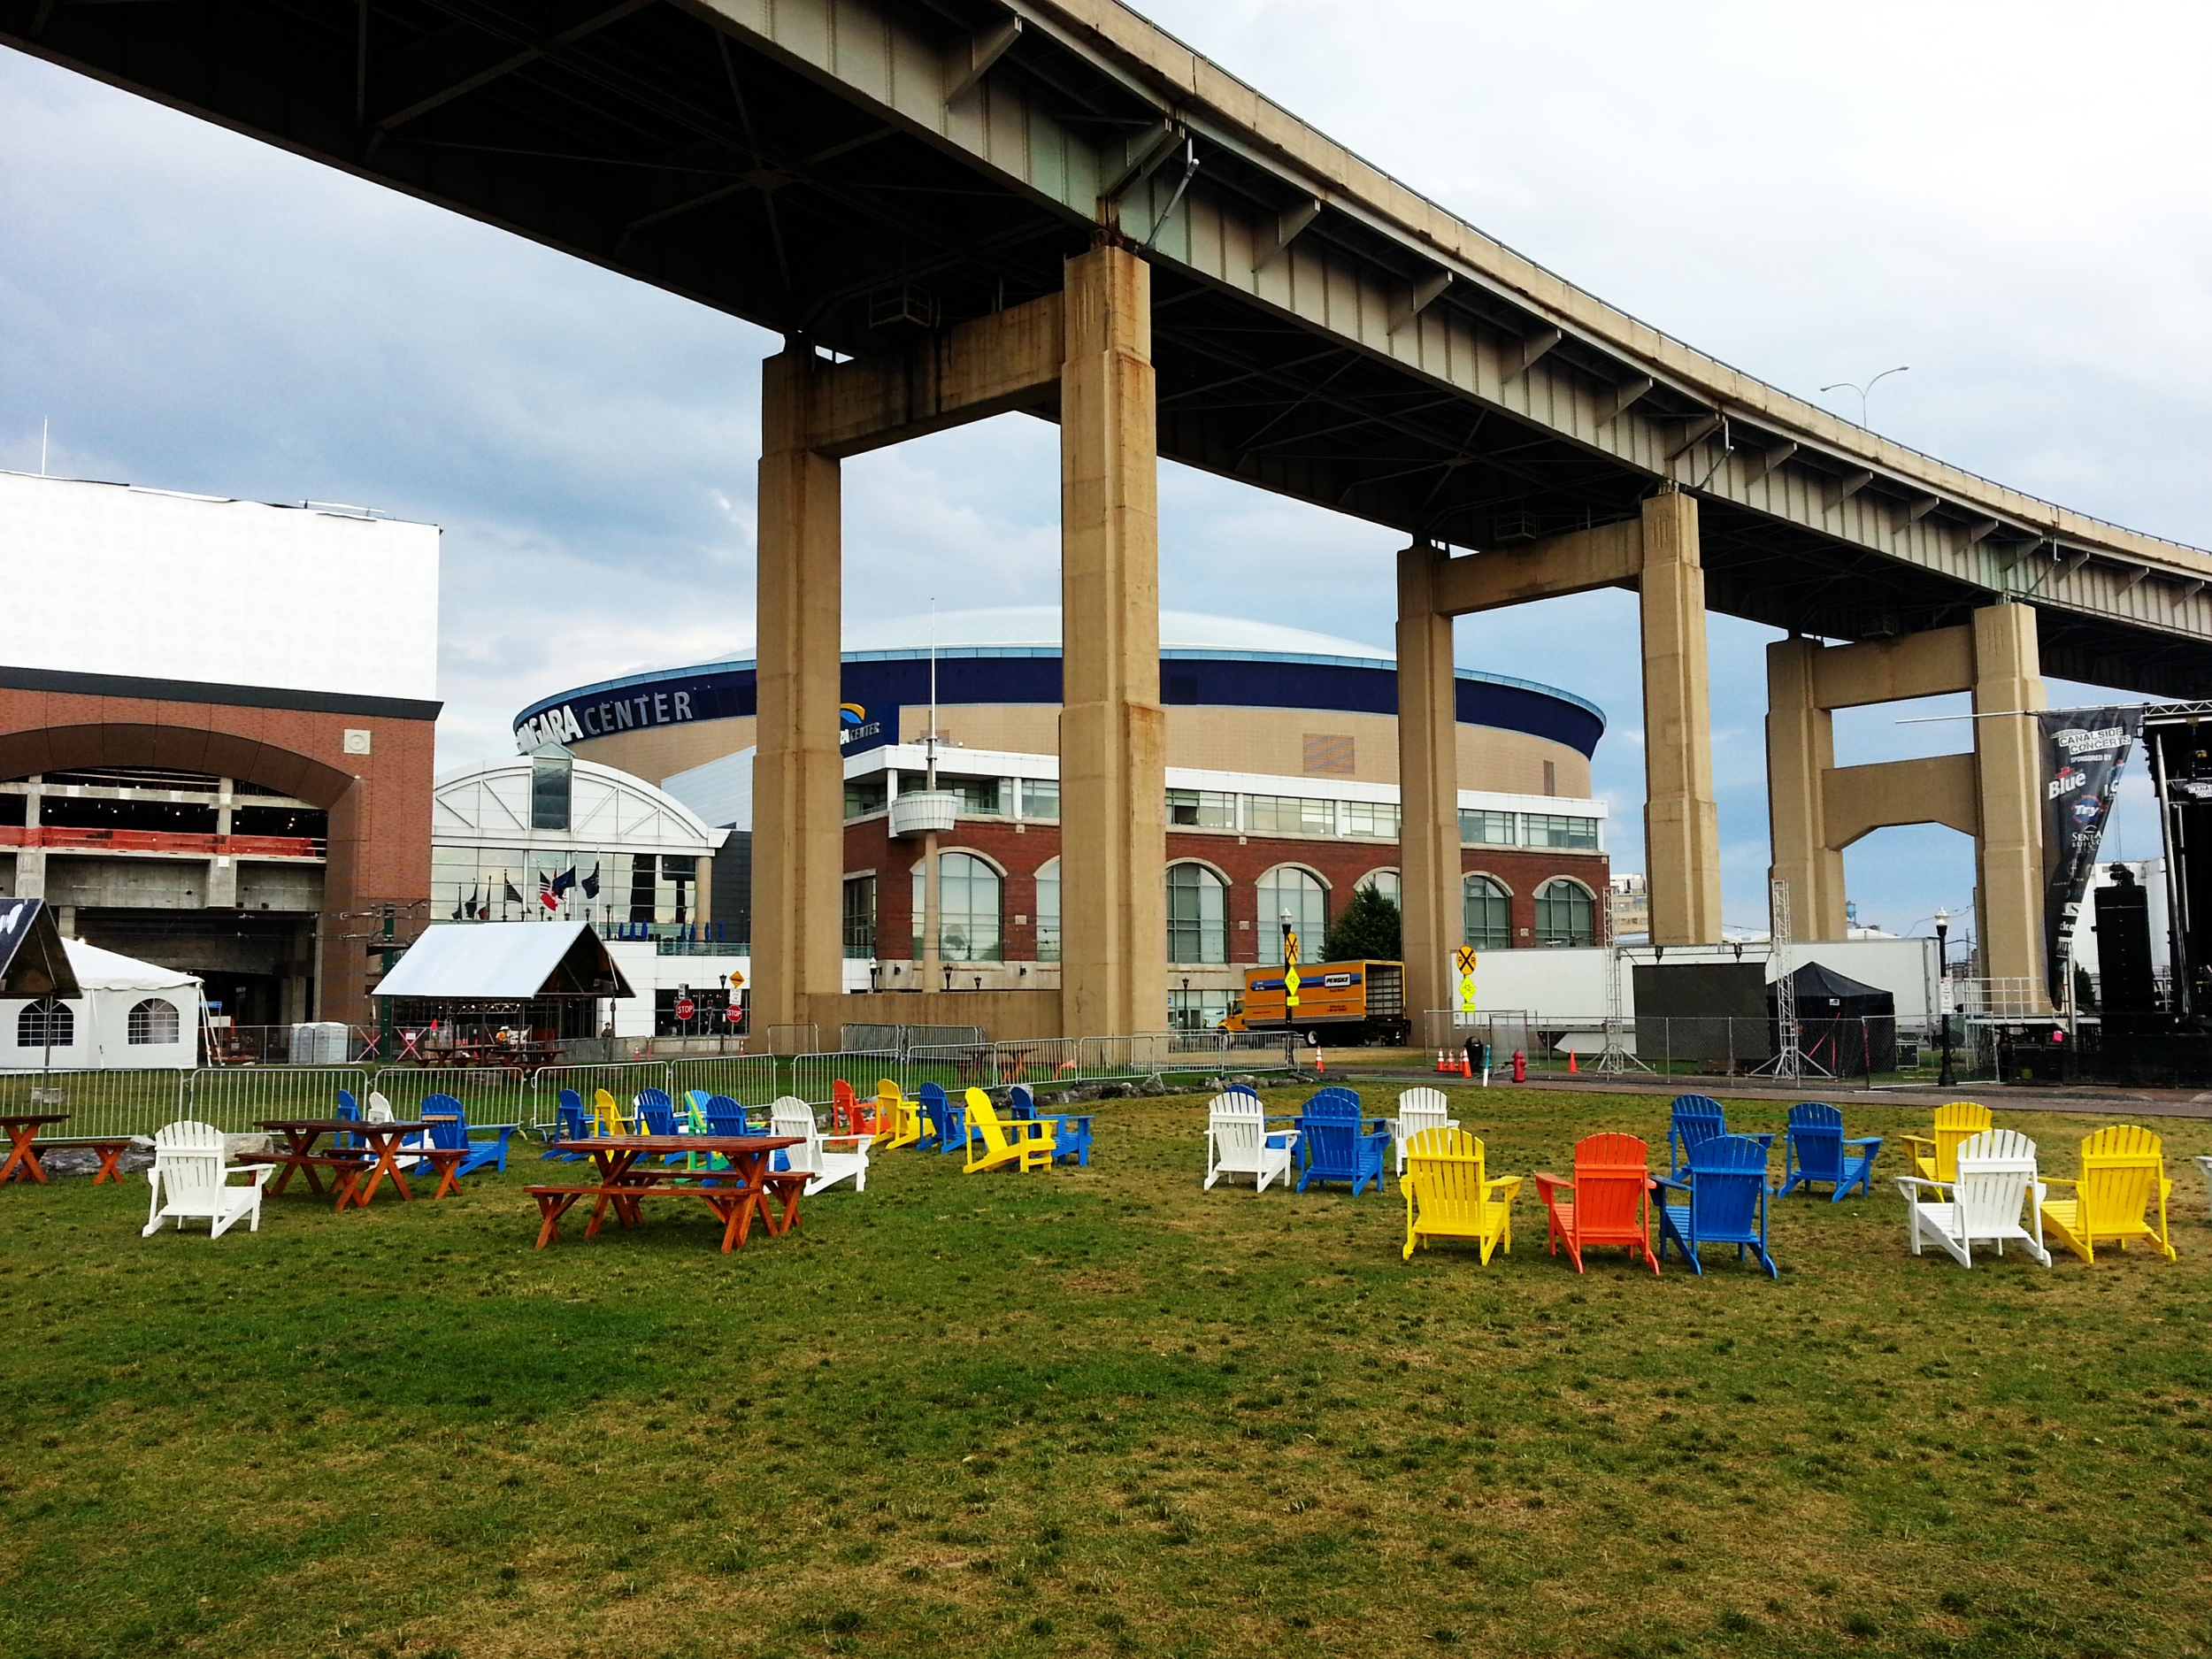 First Niagara Center.  The Buffalo Thruway passing between it and Canalside.